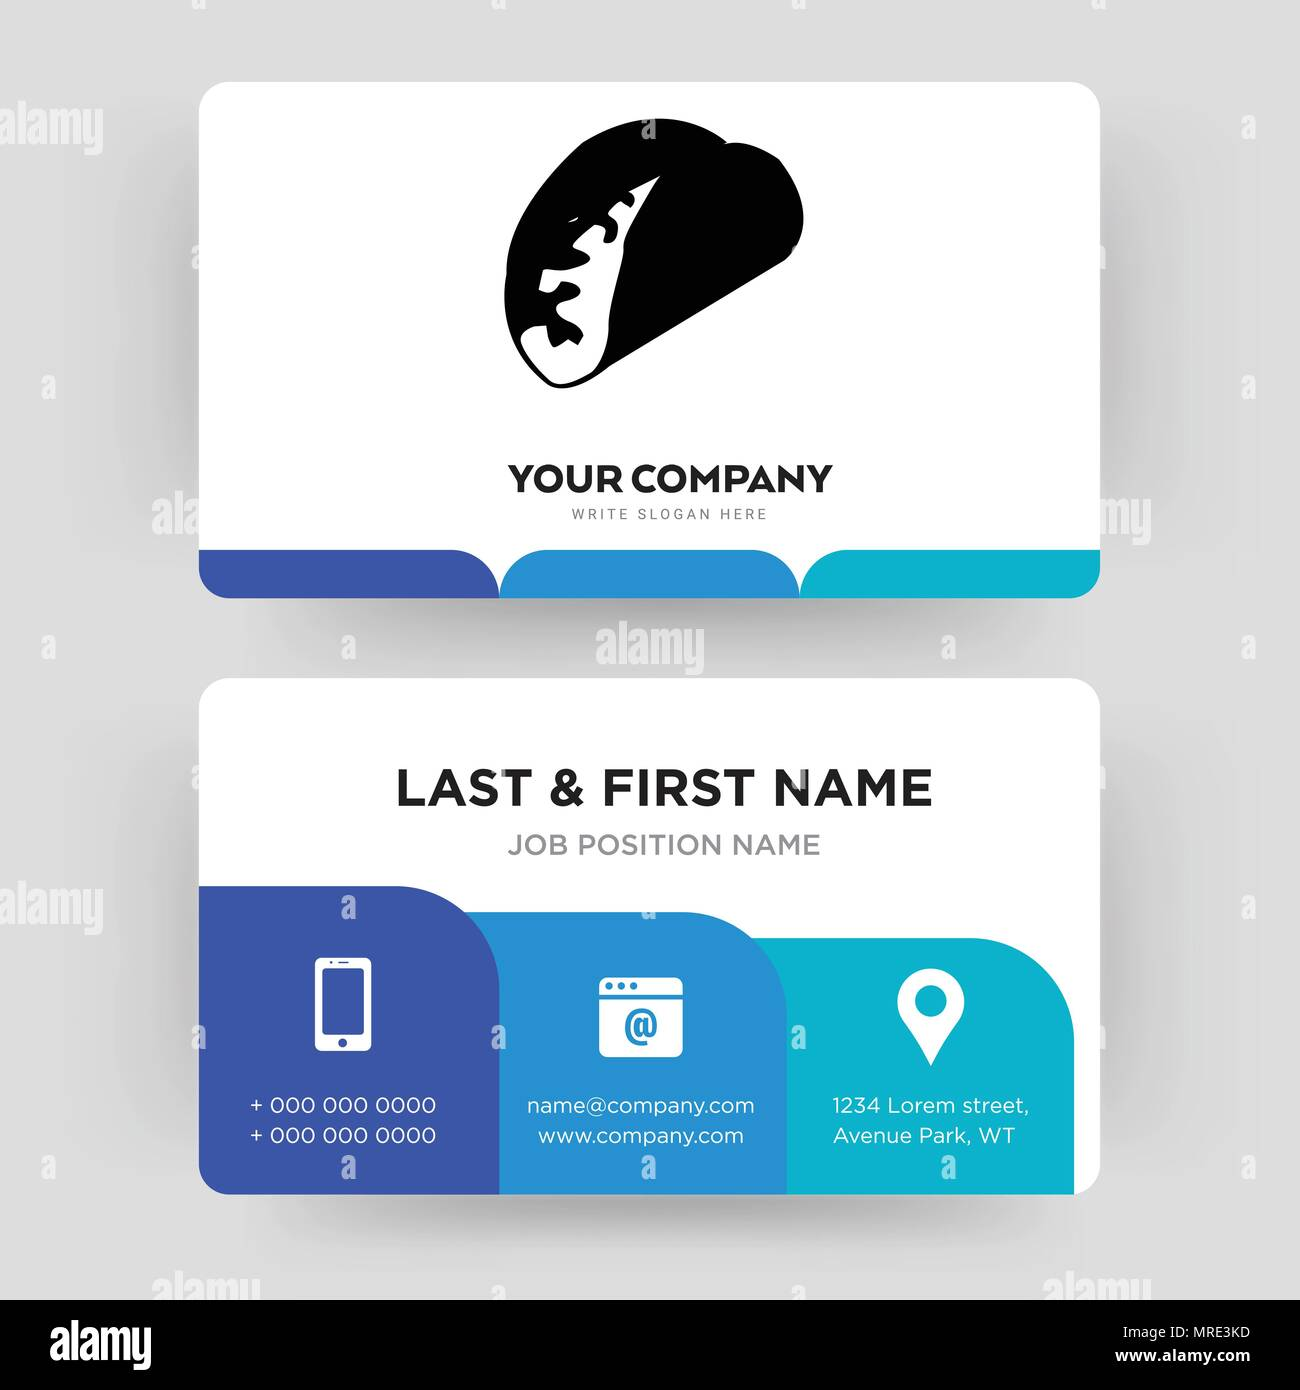 taco business card design template visiting for your company